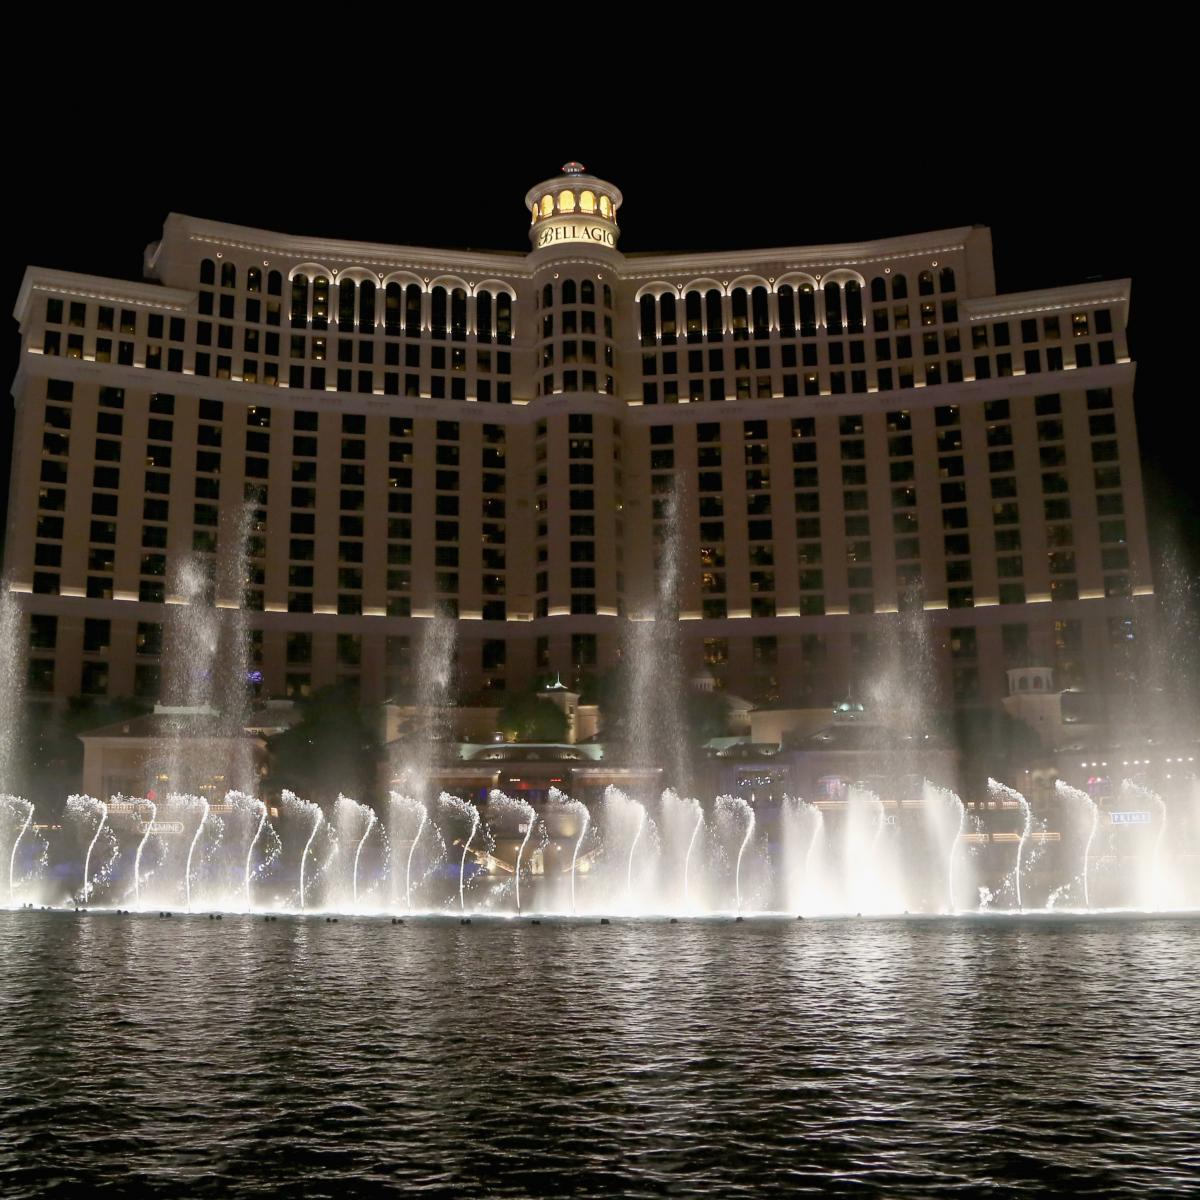 Las Vegas' 2020 NFL Draft Plans Include Stage on Water at Bellagio Fountains